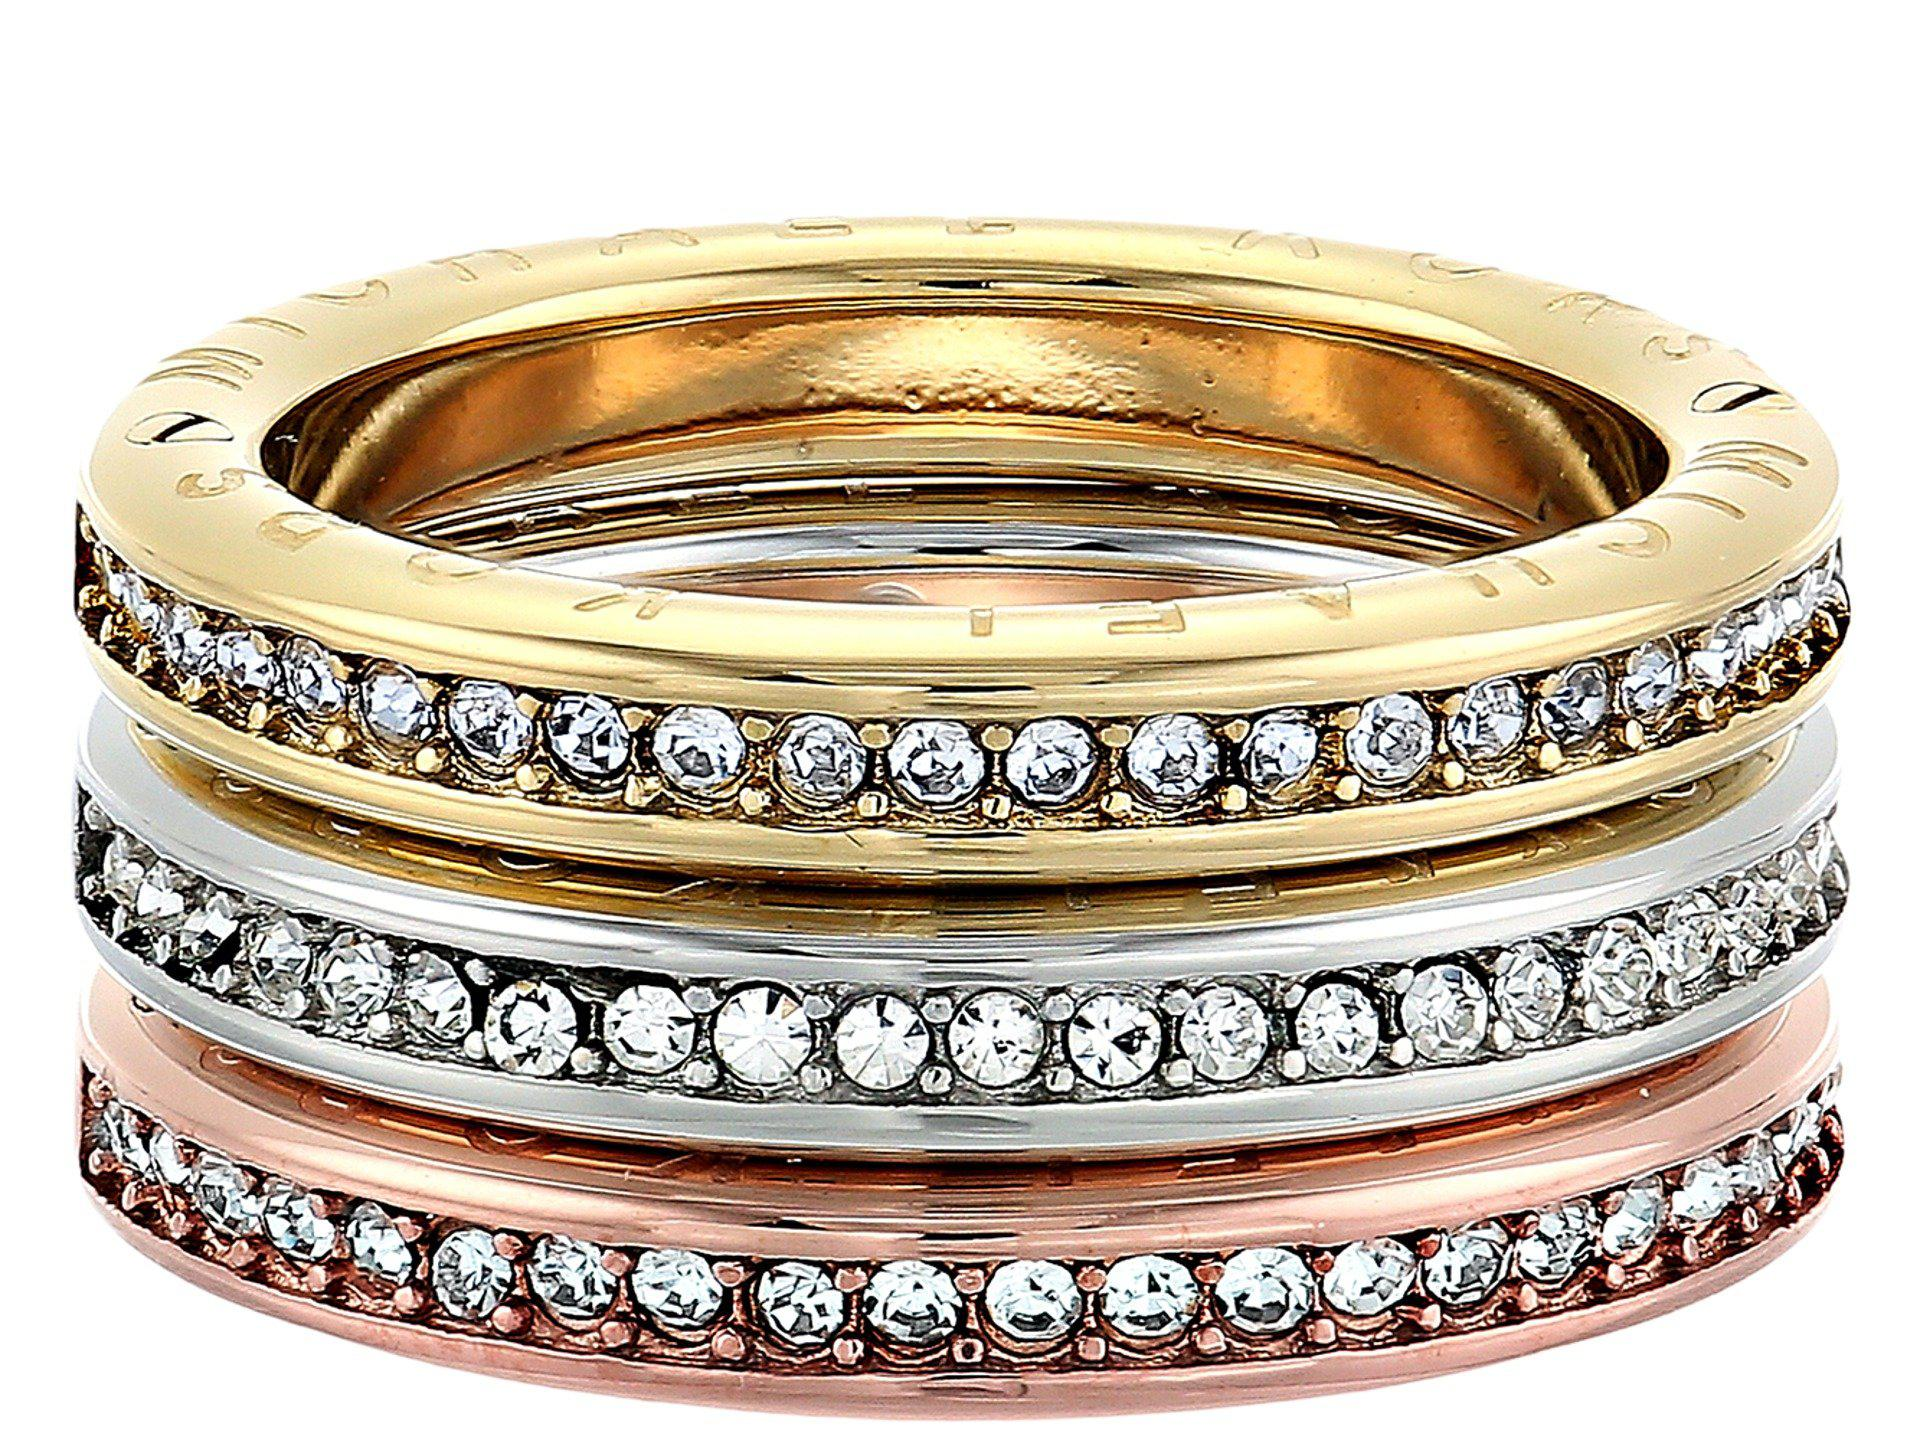 rings in product barrel tritone kors michael jewelry normal tone tri lyst metallic ring gallery